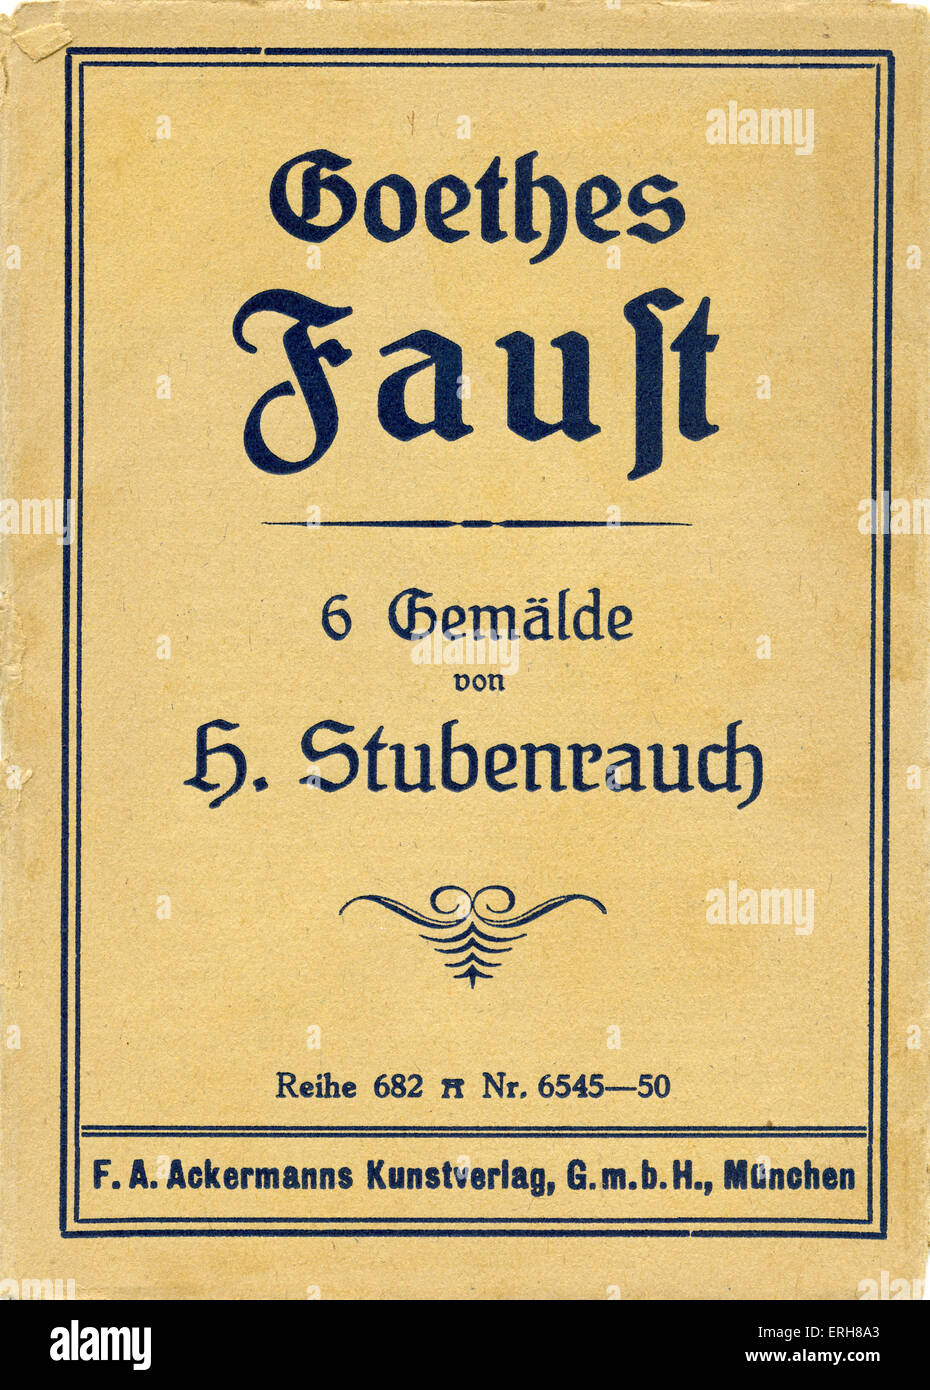 Faust by Goethe - title page for postcard series. German writer and philosopher: 28 August 1749 – 22 March 1832. - Stock Image